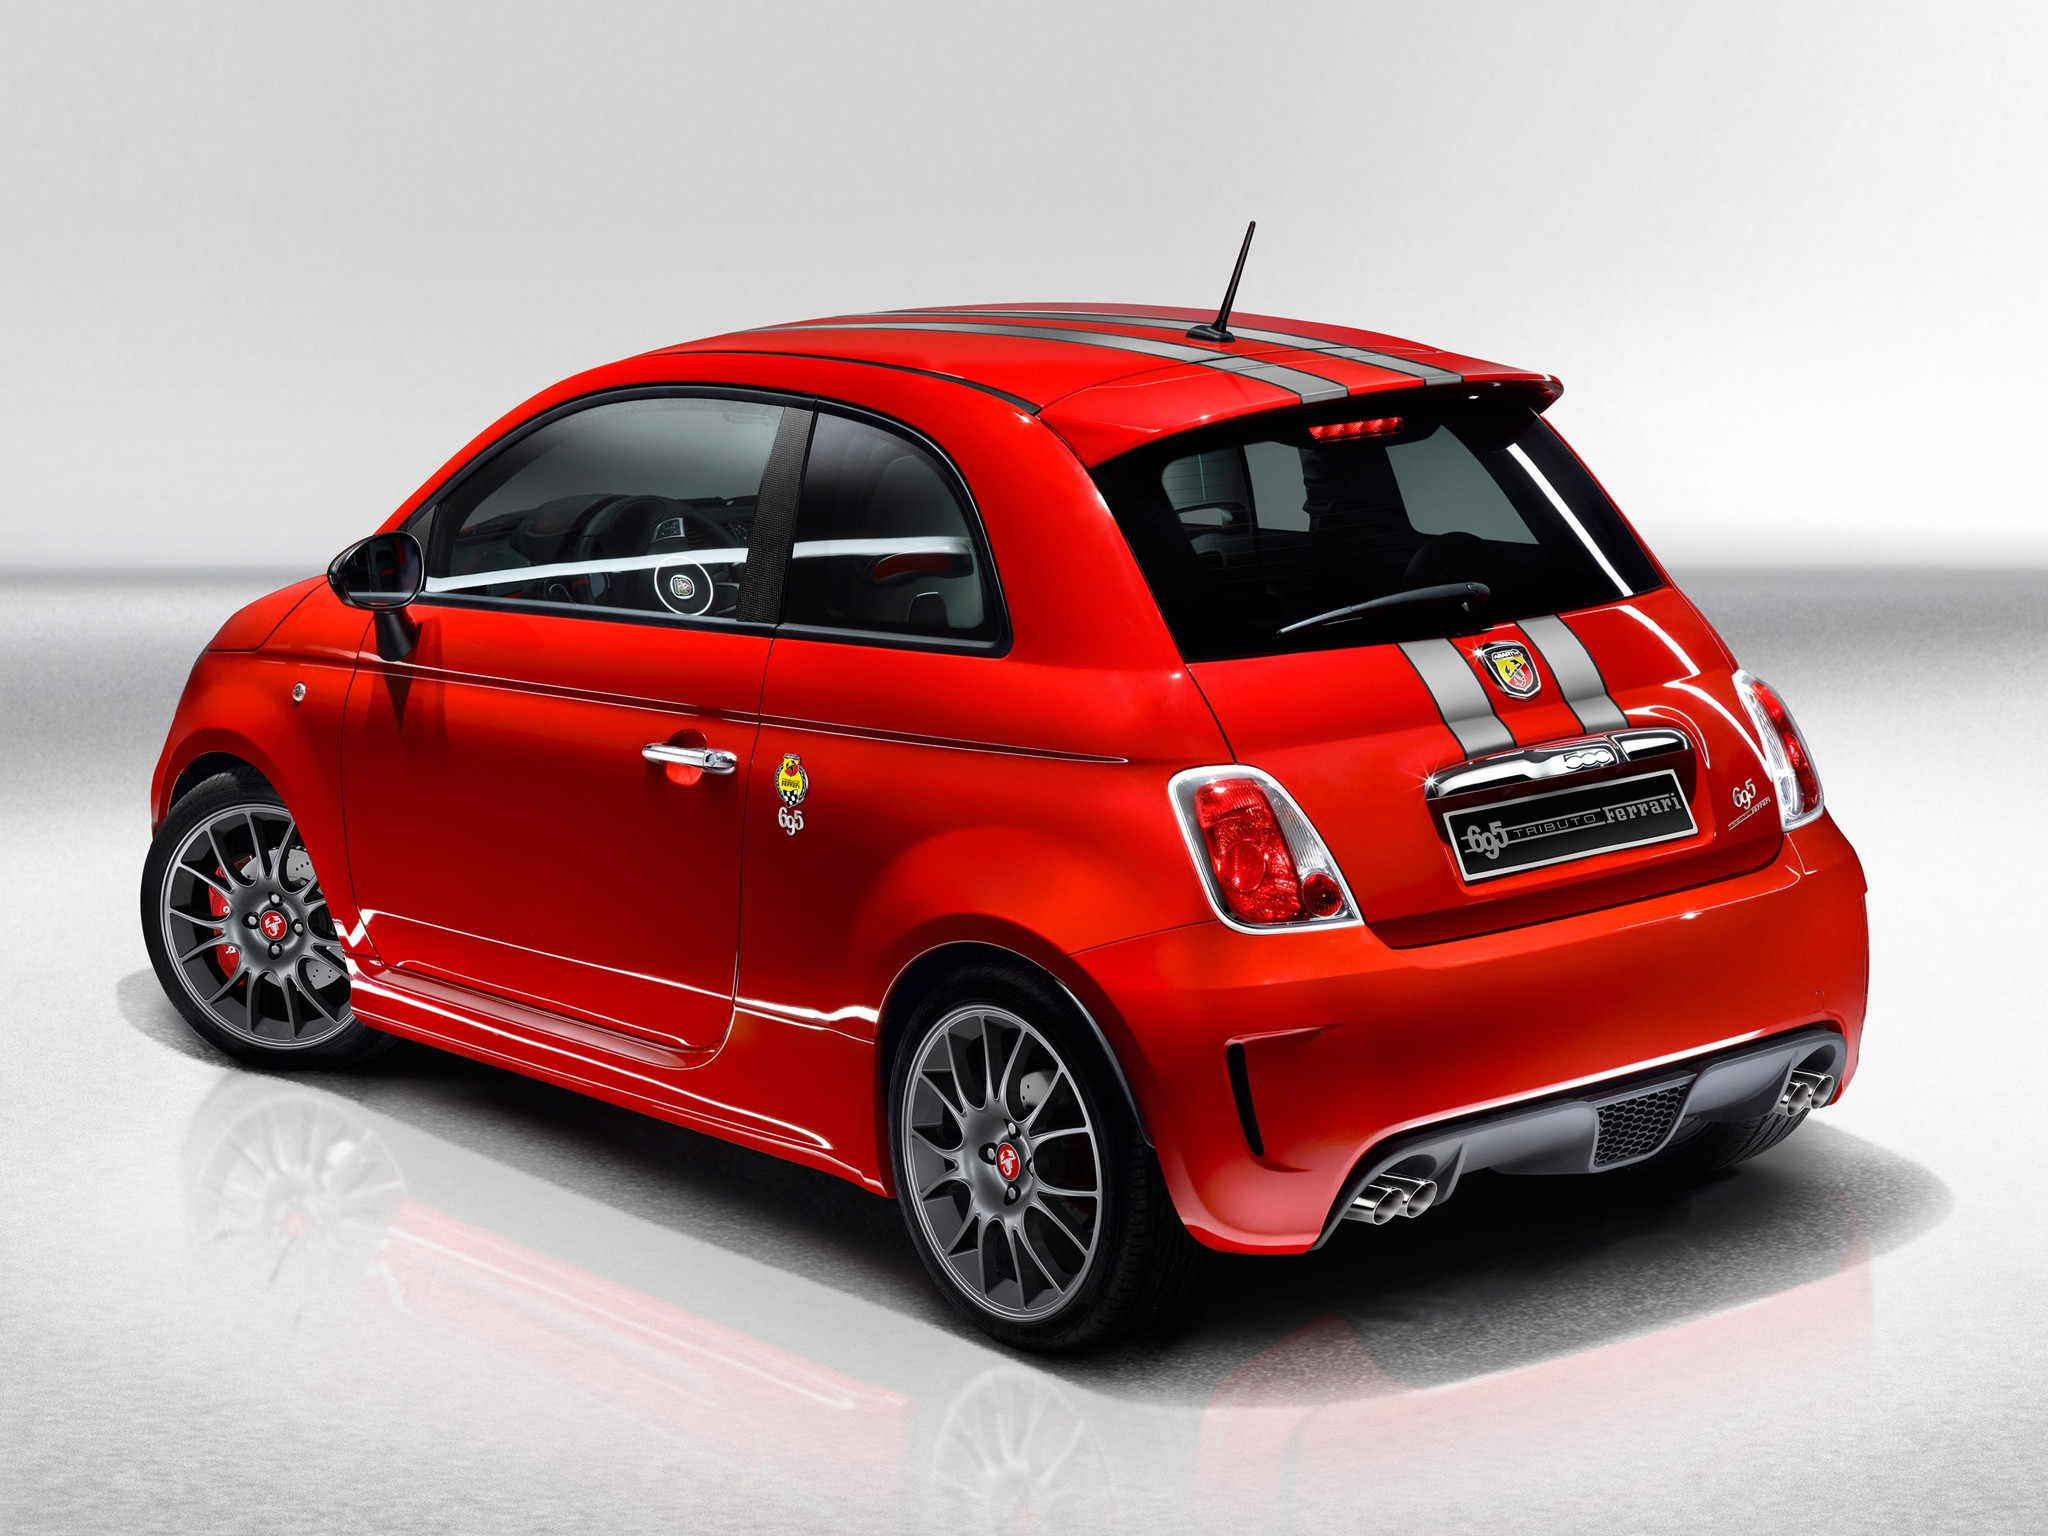 fiat 500 abarth 695 tributo ferrari specs photos 2009. Black Bedroom Furniture Sets. Home Design Ideas